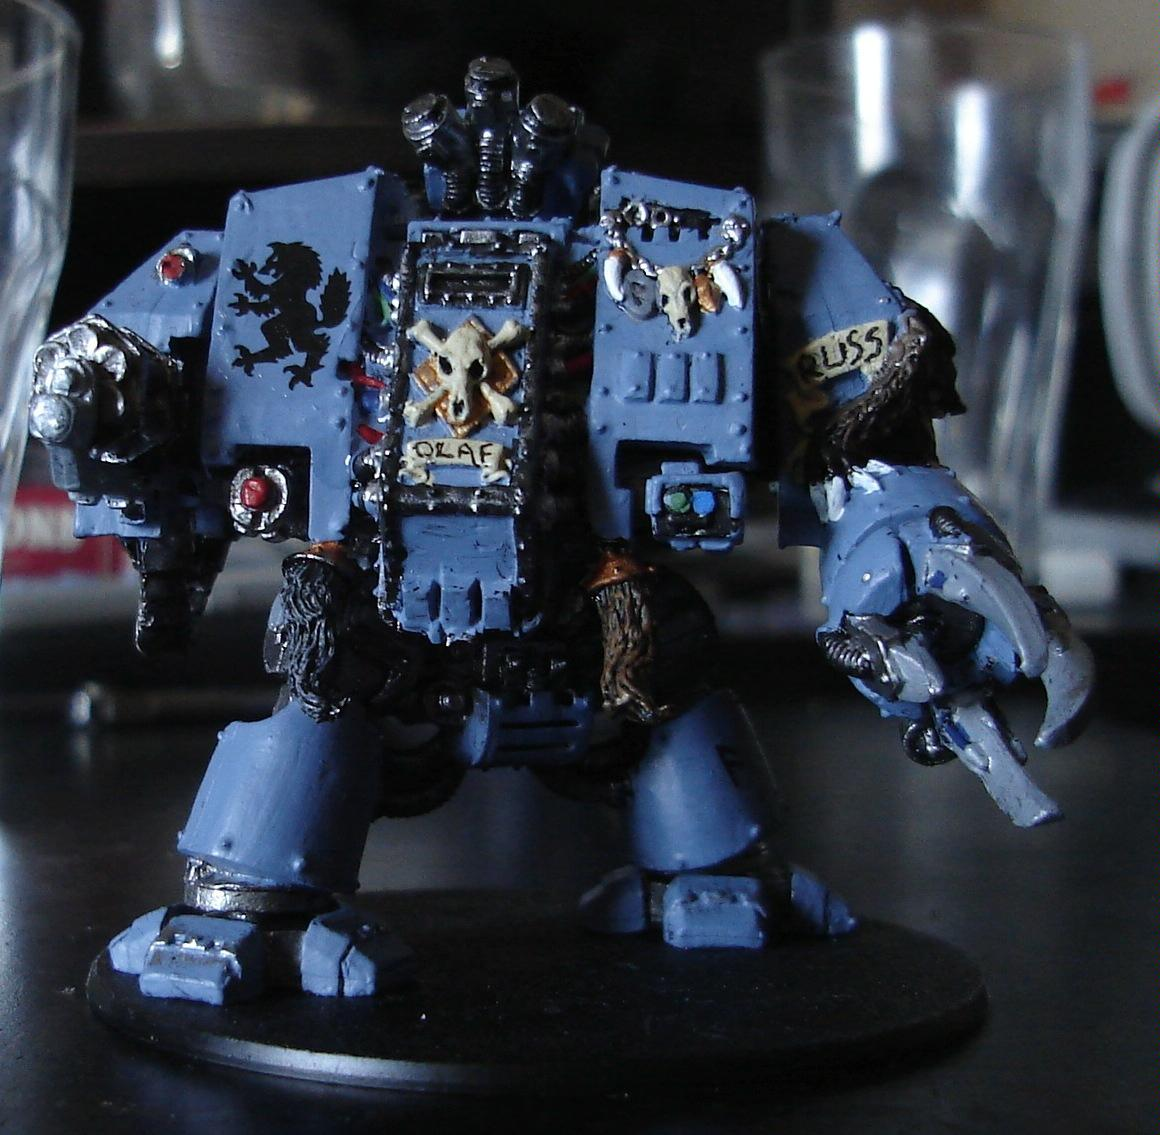 Dreadnought, Space Marines, Space Wolves, Warhammer 40,000